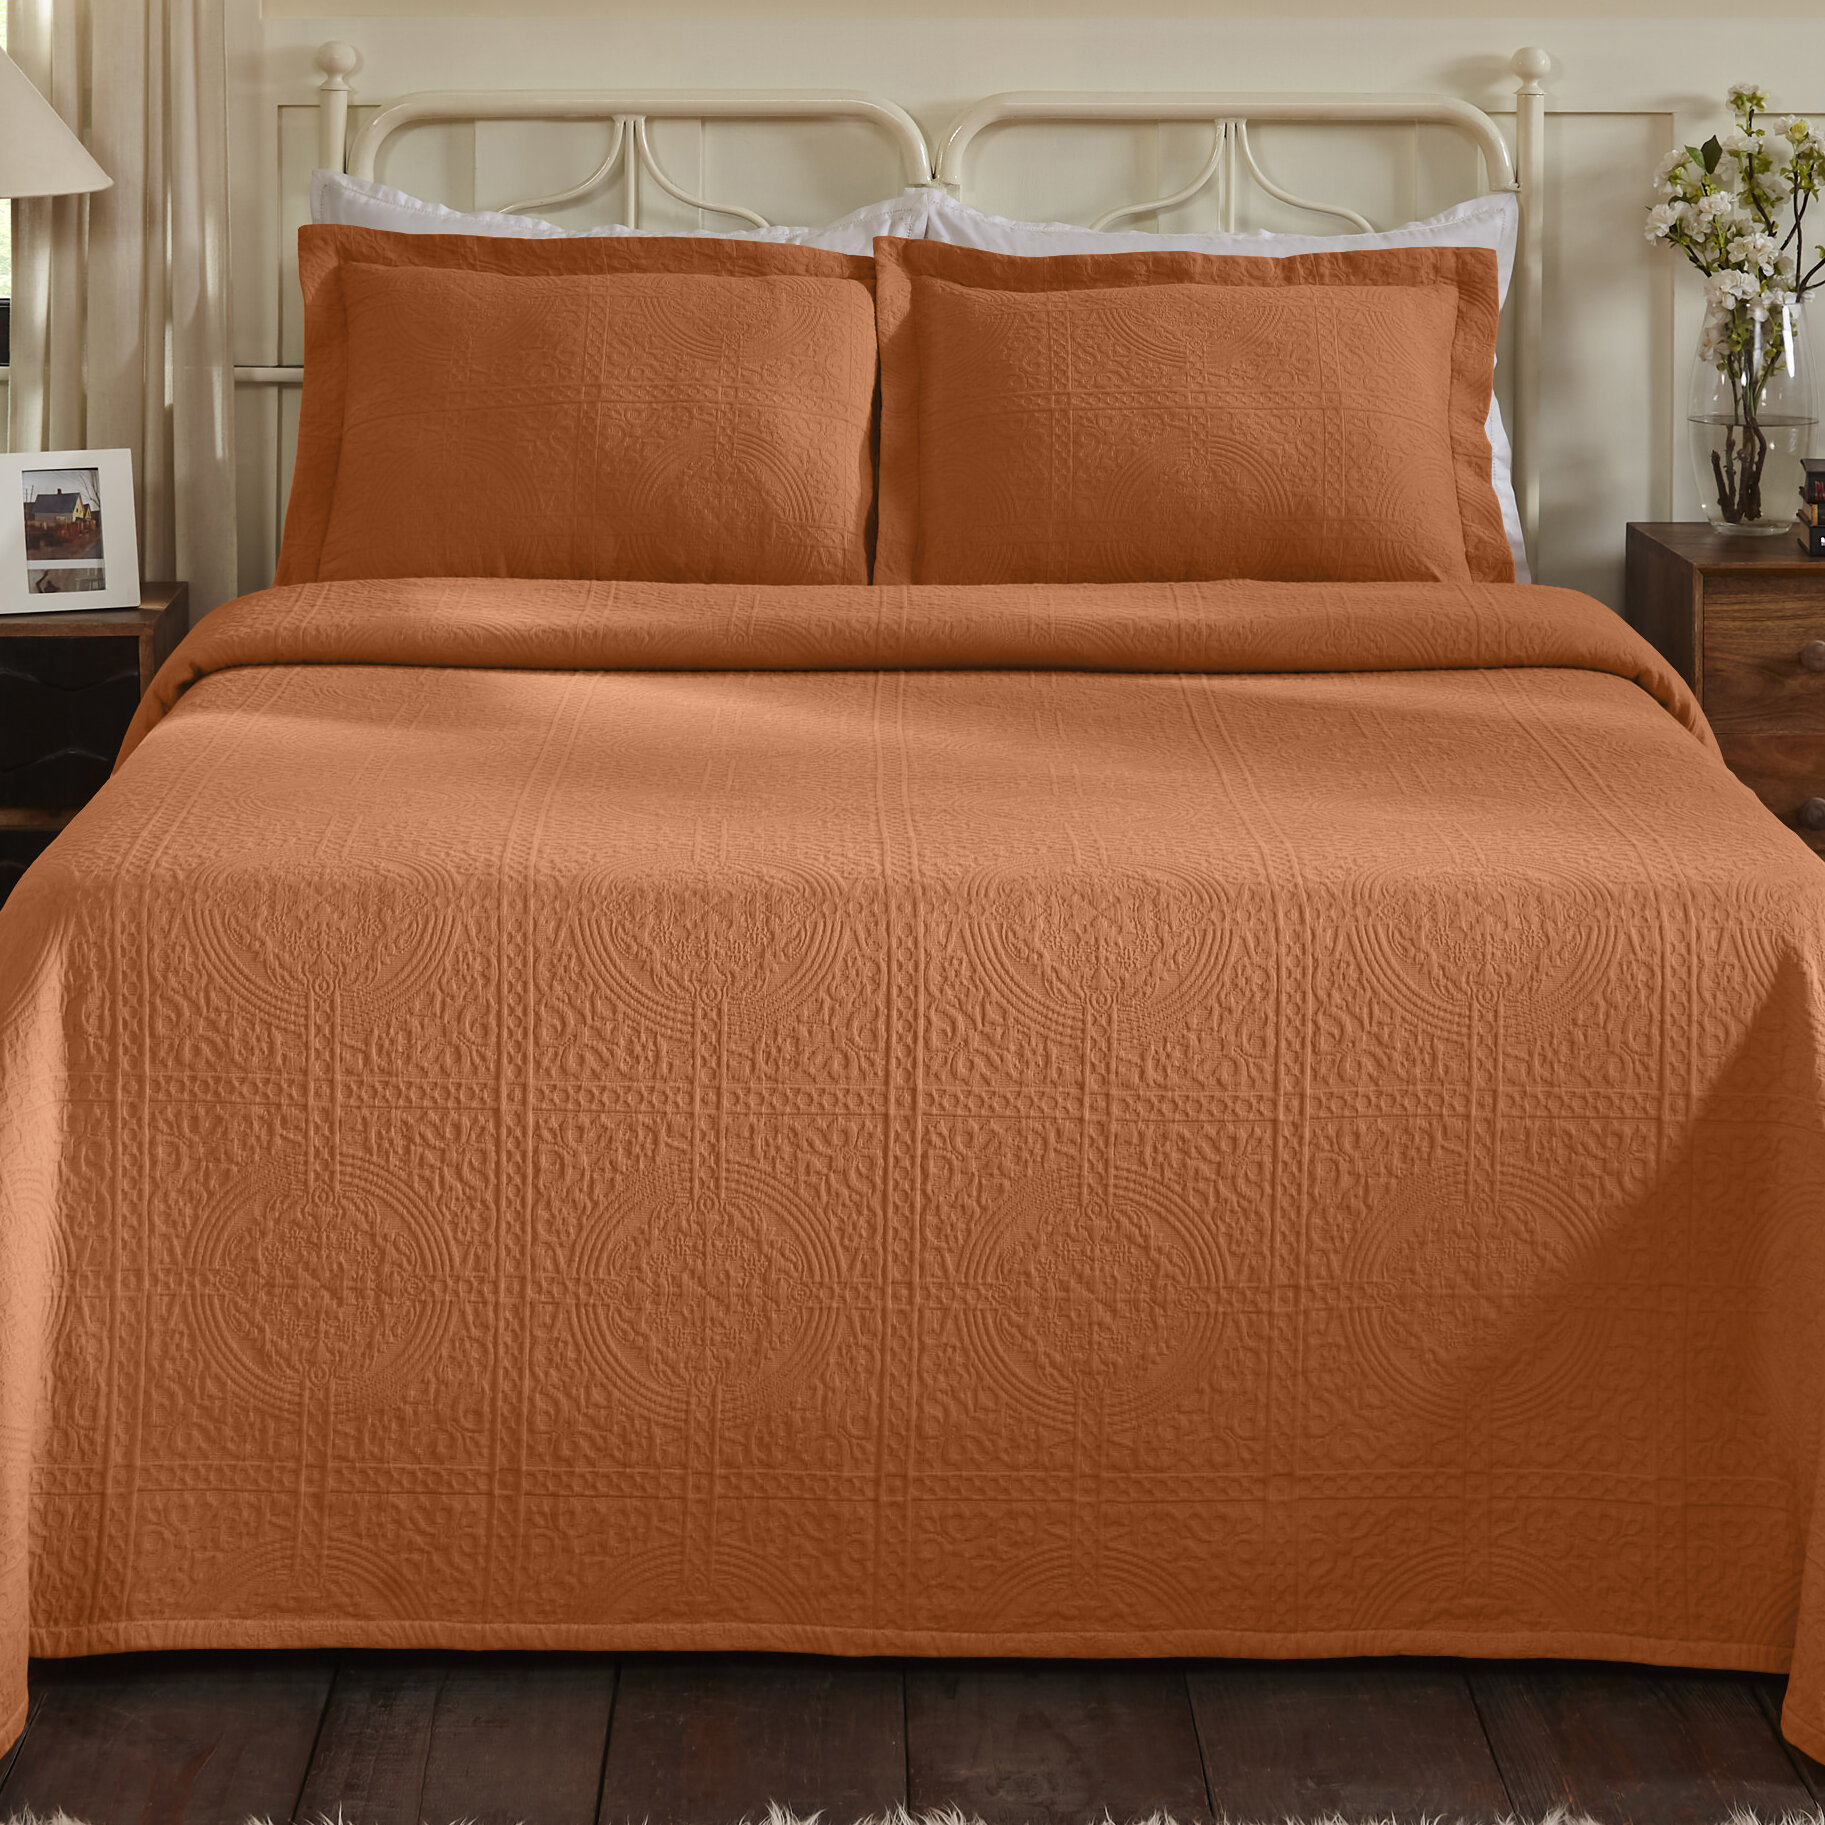 balance n gift less near of card size queen sale things stores bedding cover linen and bed duvet me luxury for bedroom covers matelasse full linens